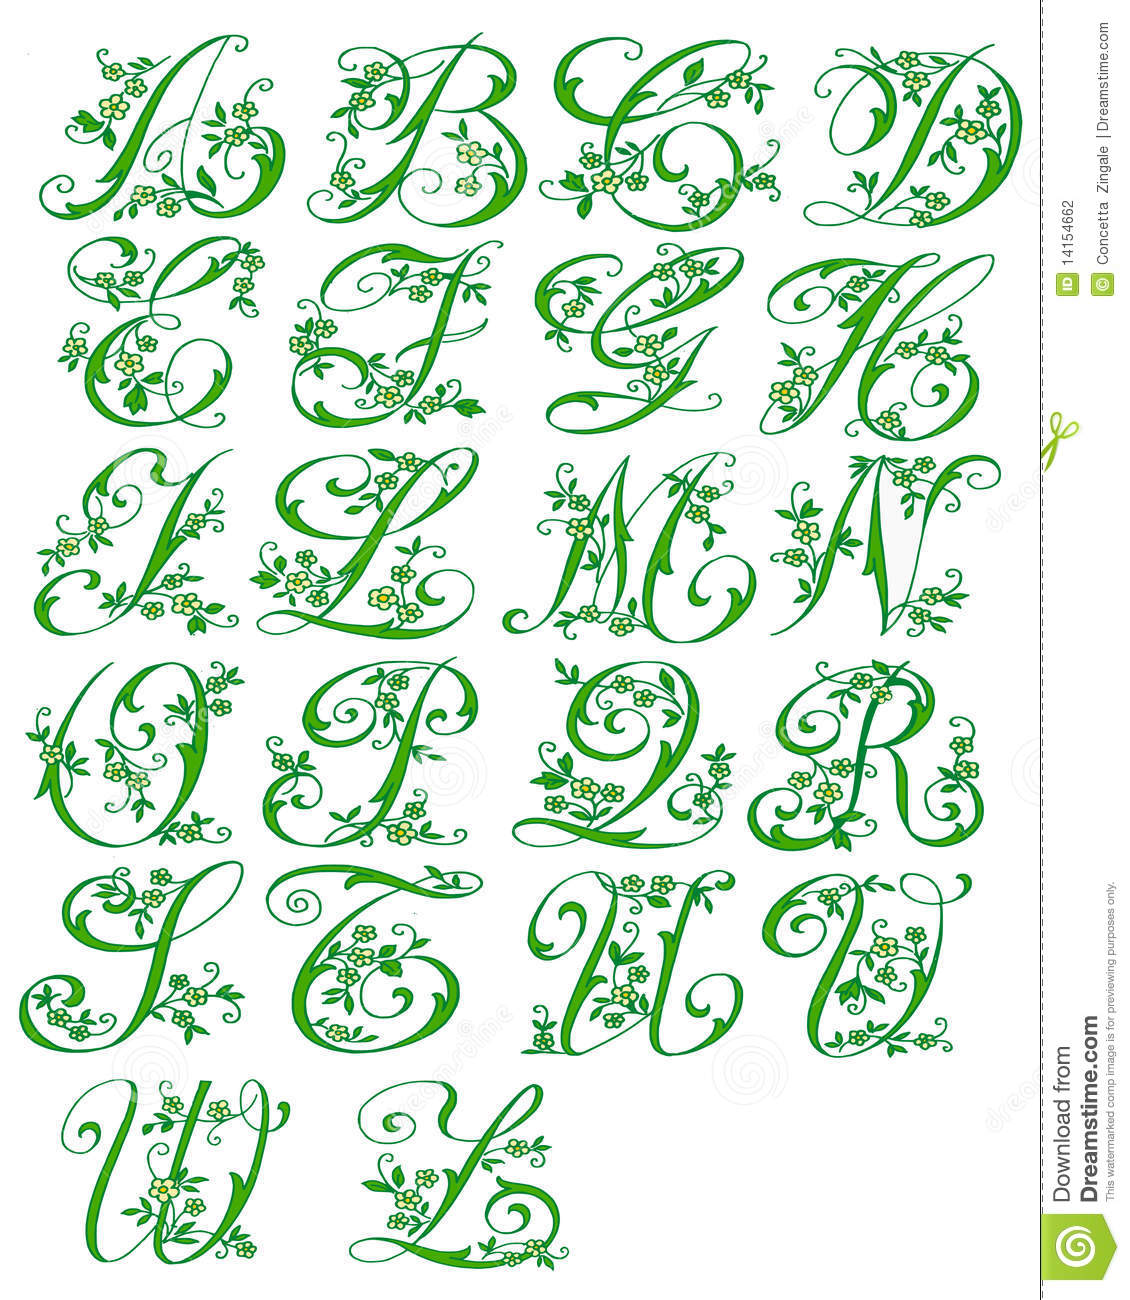 The picture shows all the letters of the color green to indicate the ...